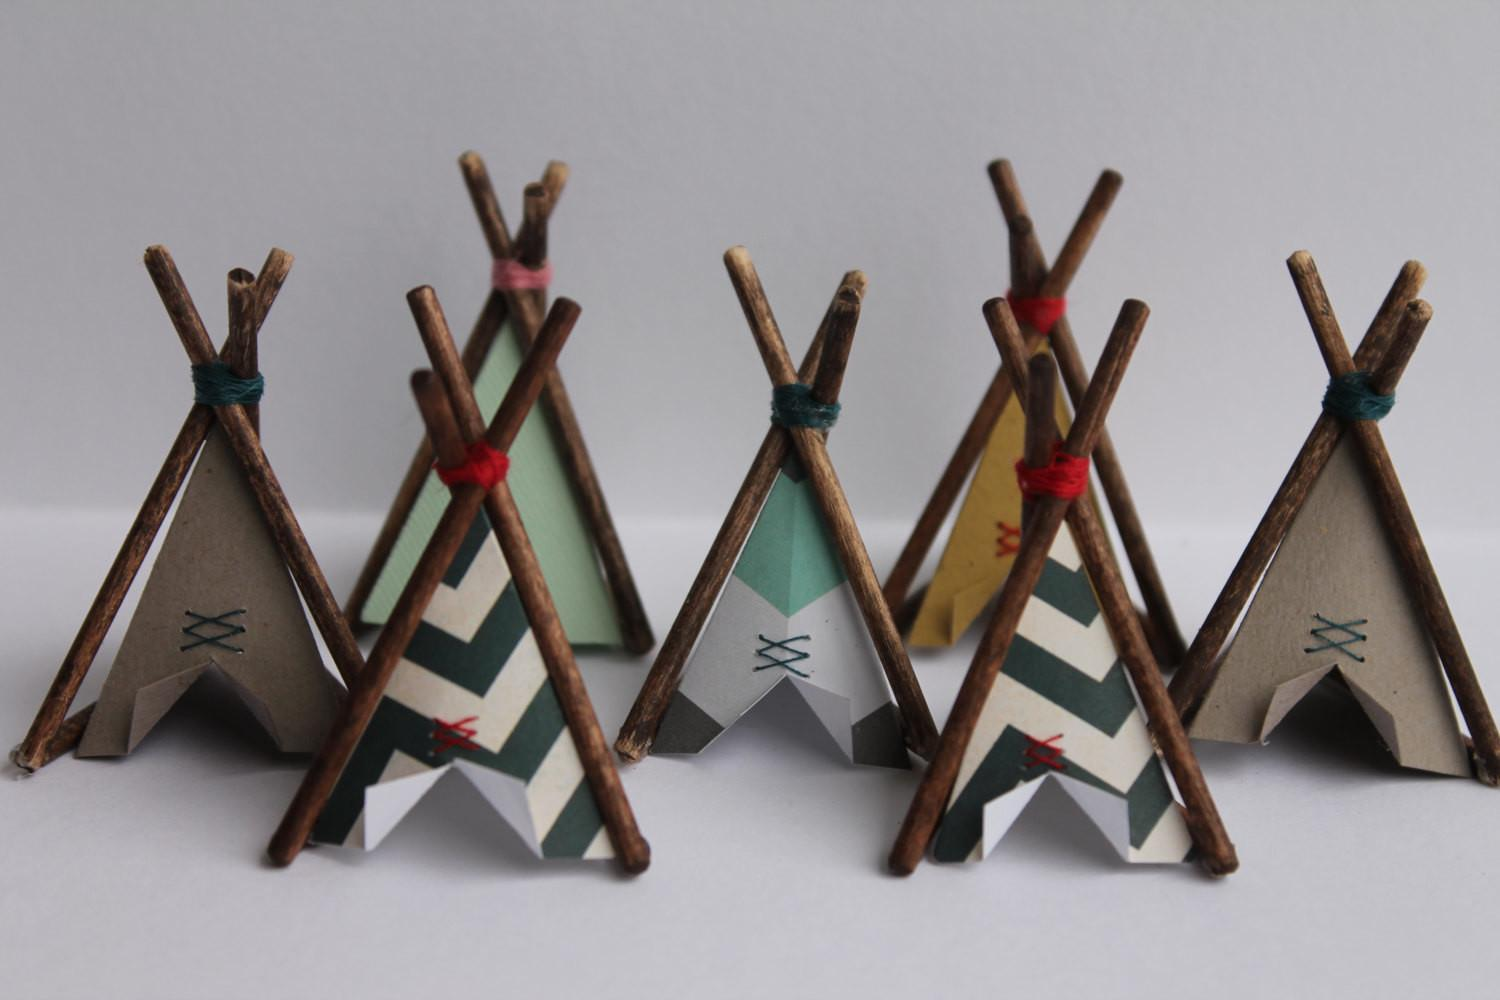 Cake Topper Mini Teepee Home Decor Small Wigwam